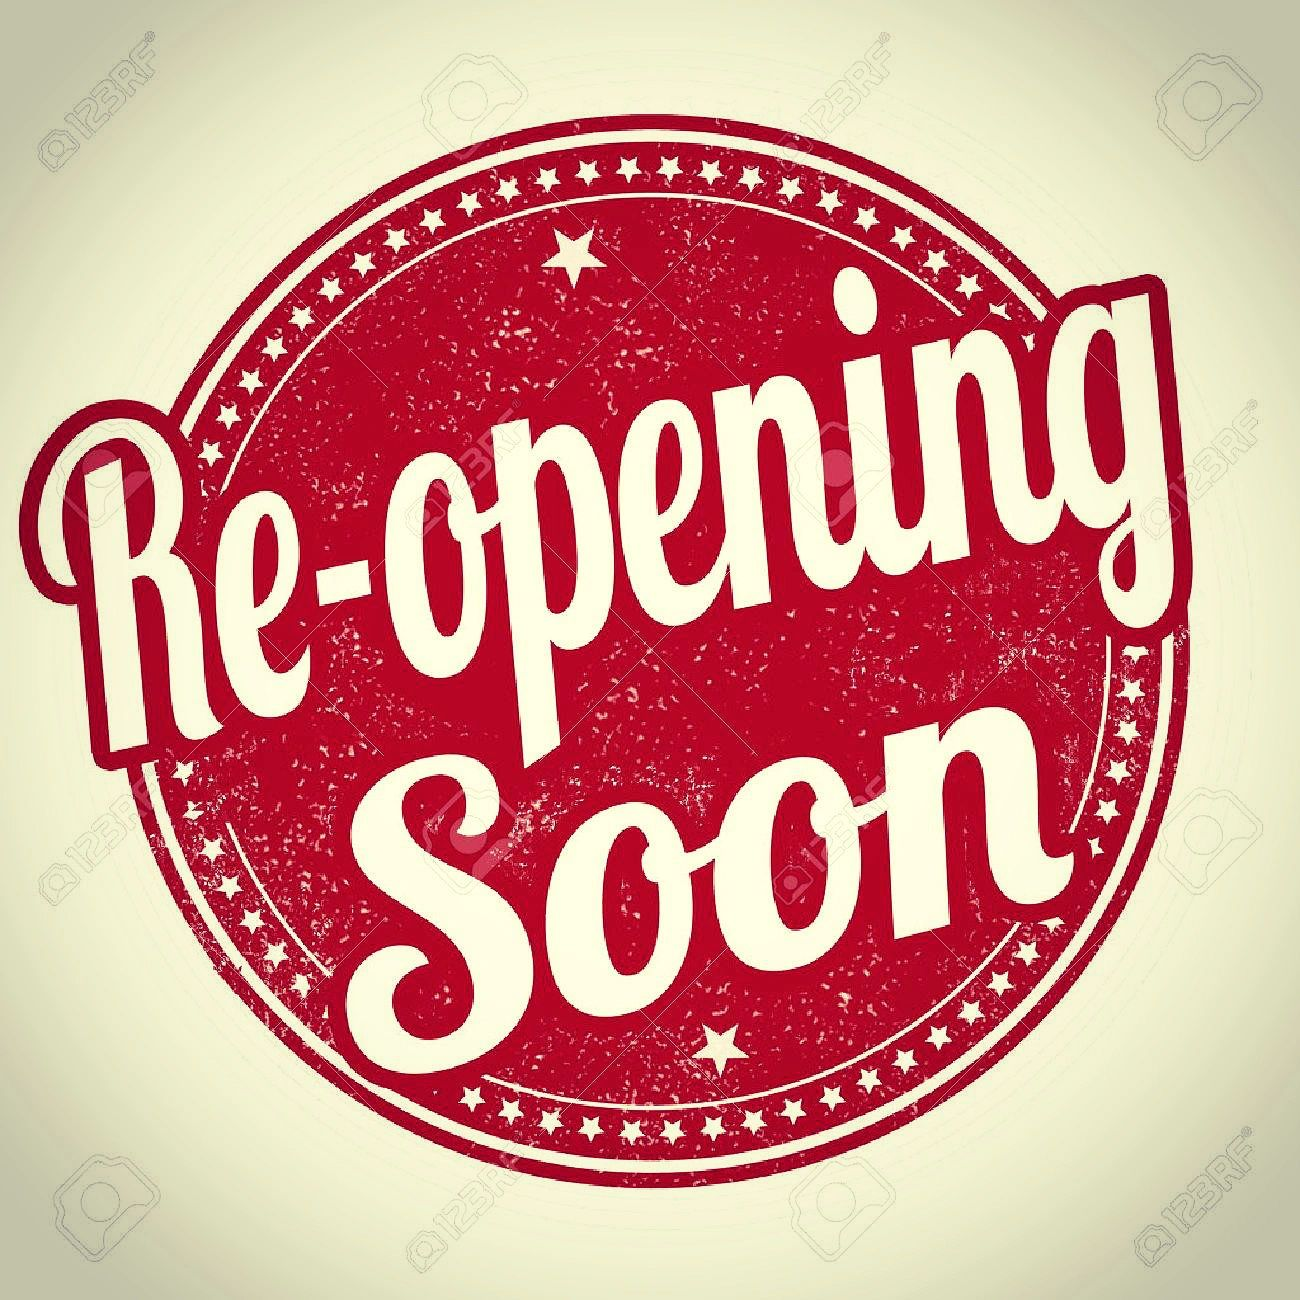 I am so so excited to announce that we will be able to open back up this coming Friday, 04/24.  Than